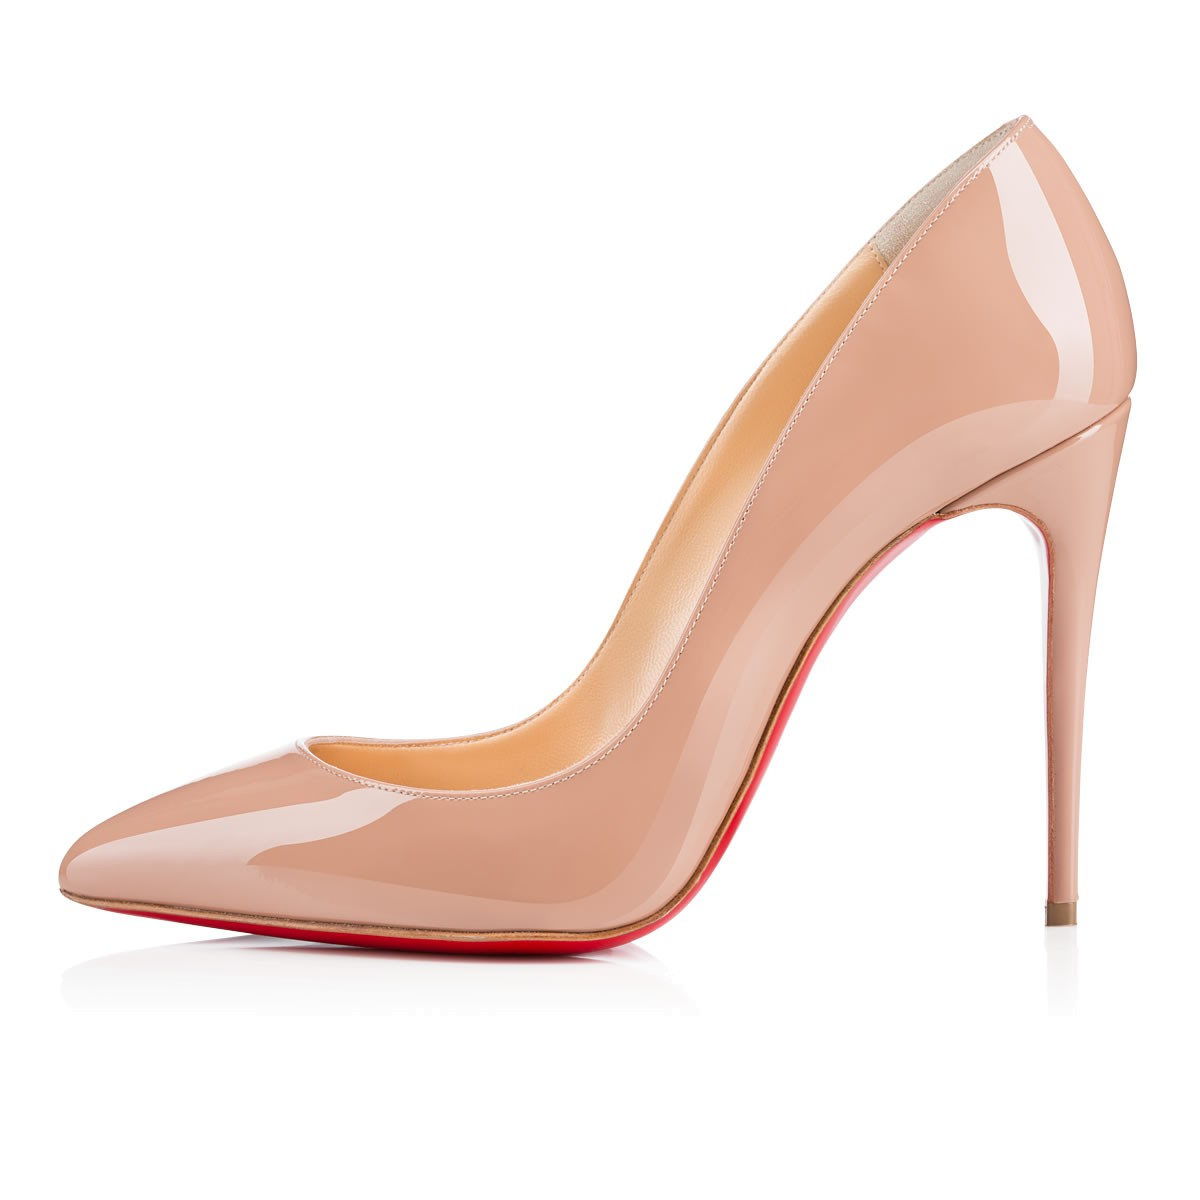 louboutin pigalle follies patent